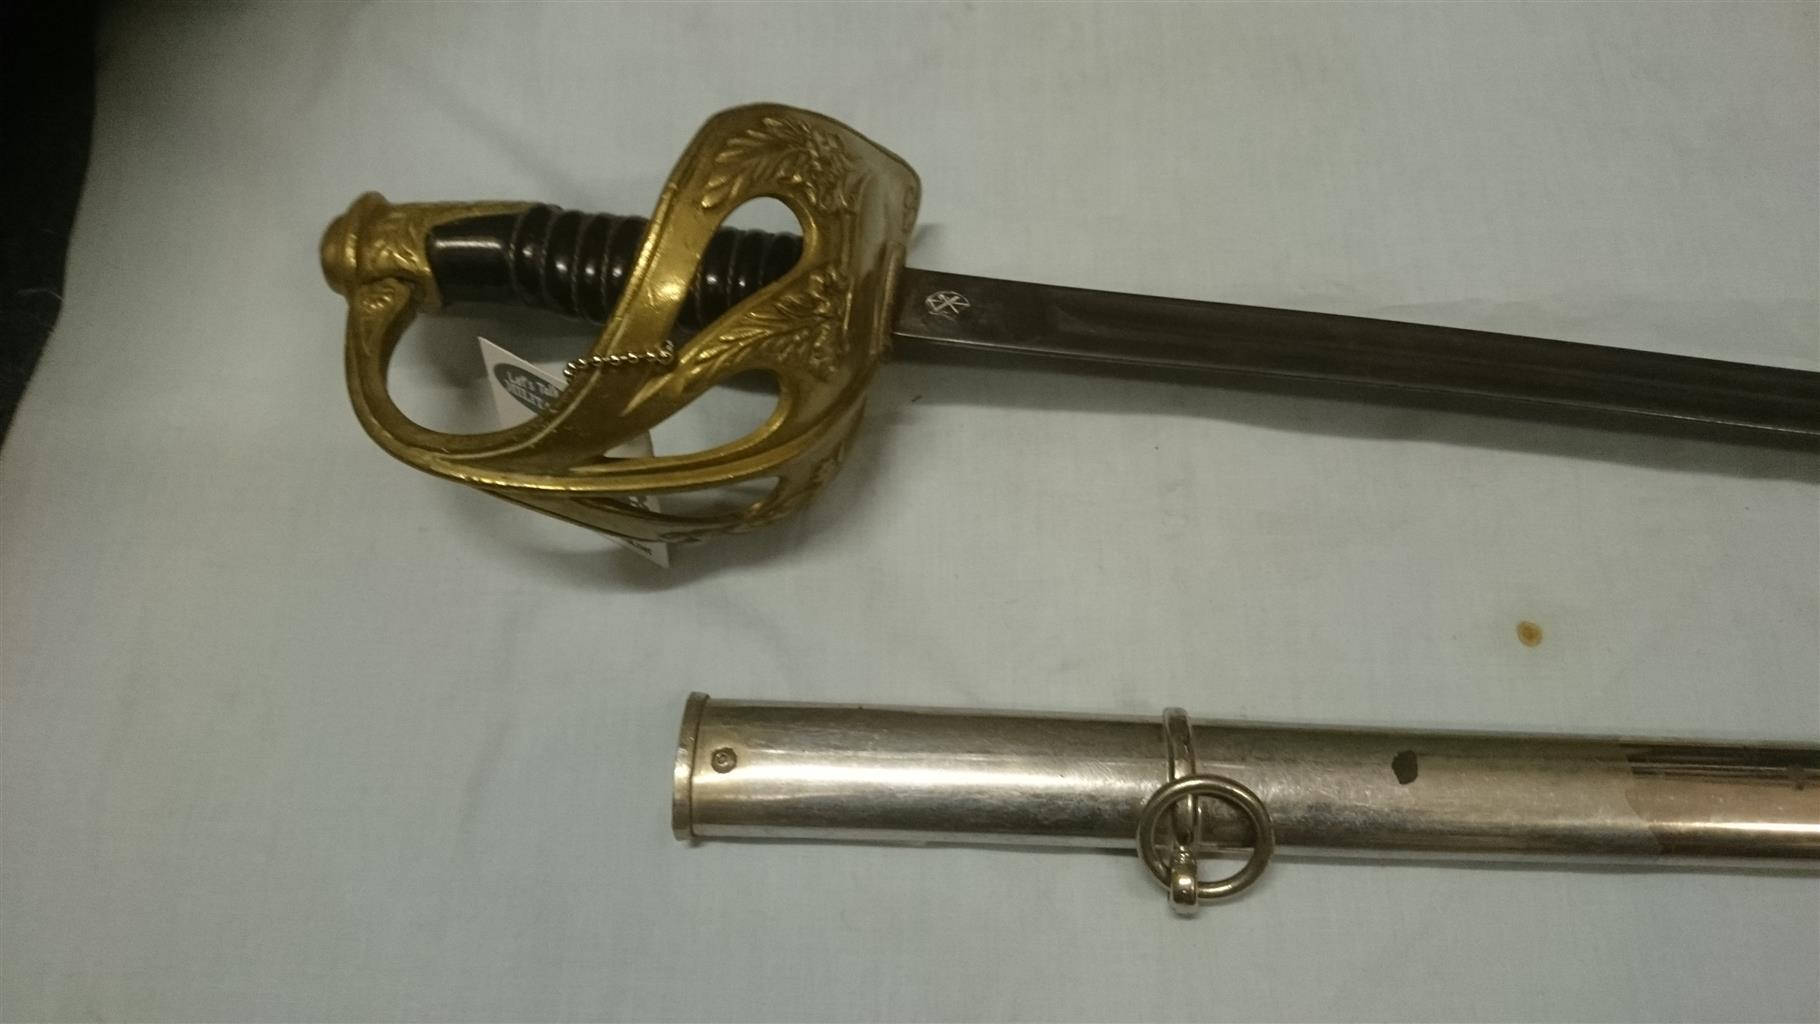 French 1896 colonial cavalry sword, beautiful original condition.